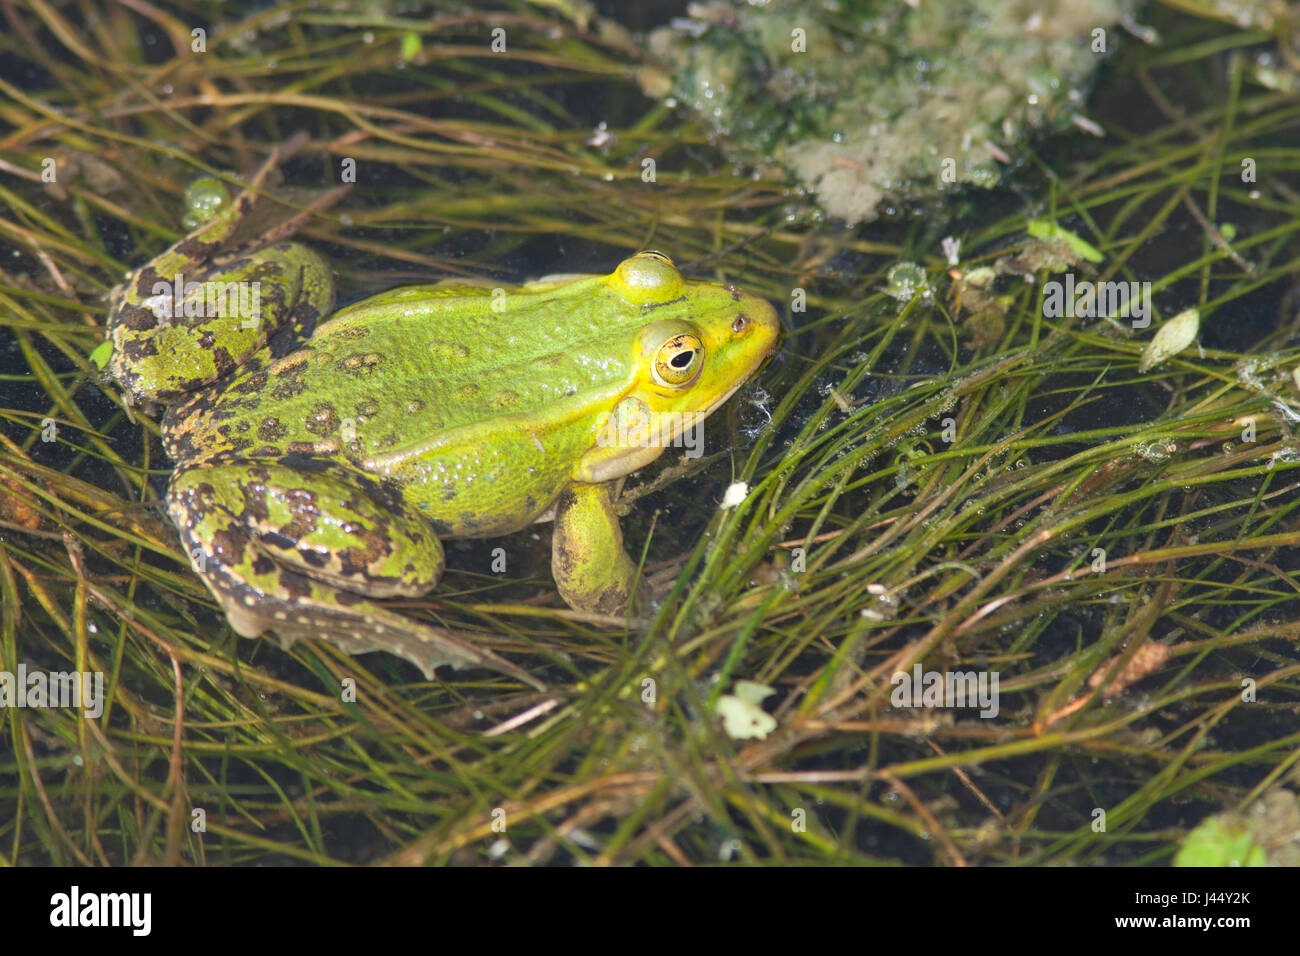 photo of a male pool frog in the water - Stock Image